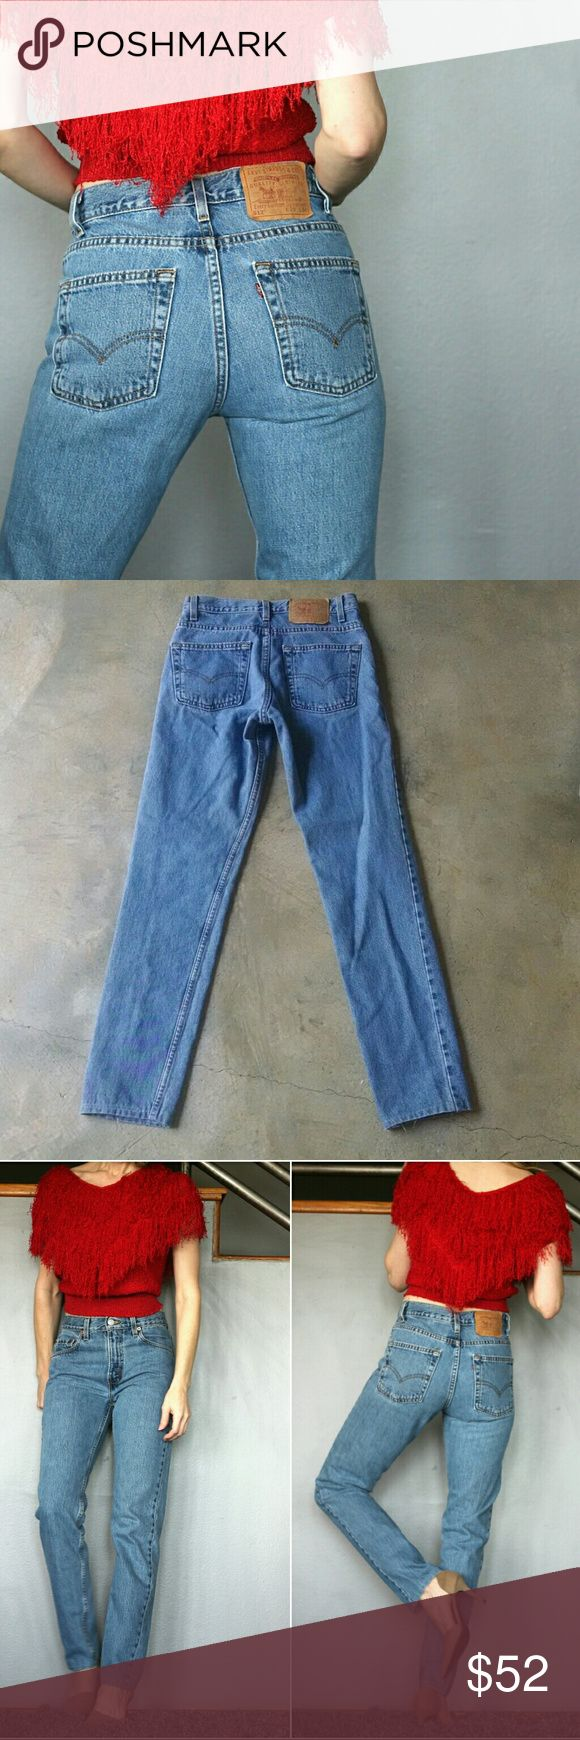 """👖 Levi's 512 Jeans Levi's 512 Slim Fit Tapered Leg size 29 x 34 - length has been altered (looks like it was shortened/ hemmed by non-professional) - see pic & meas. 100% cotton made in the USA Great looking pair of jeans. waist 14"""" across rise 10.5"""" hip 18"""" inseam 30.5"""" shown on 5'8"""" size 4  great condition overall - appear to have been shortened/altered at leg hems - see pic. 501 80s 90s mom jeans denim 512s urban outfitters brandy melville zara reformation vintage Listed price firm…"""